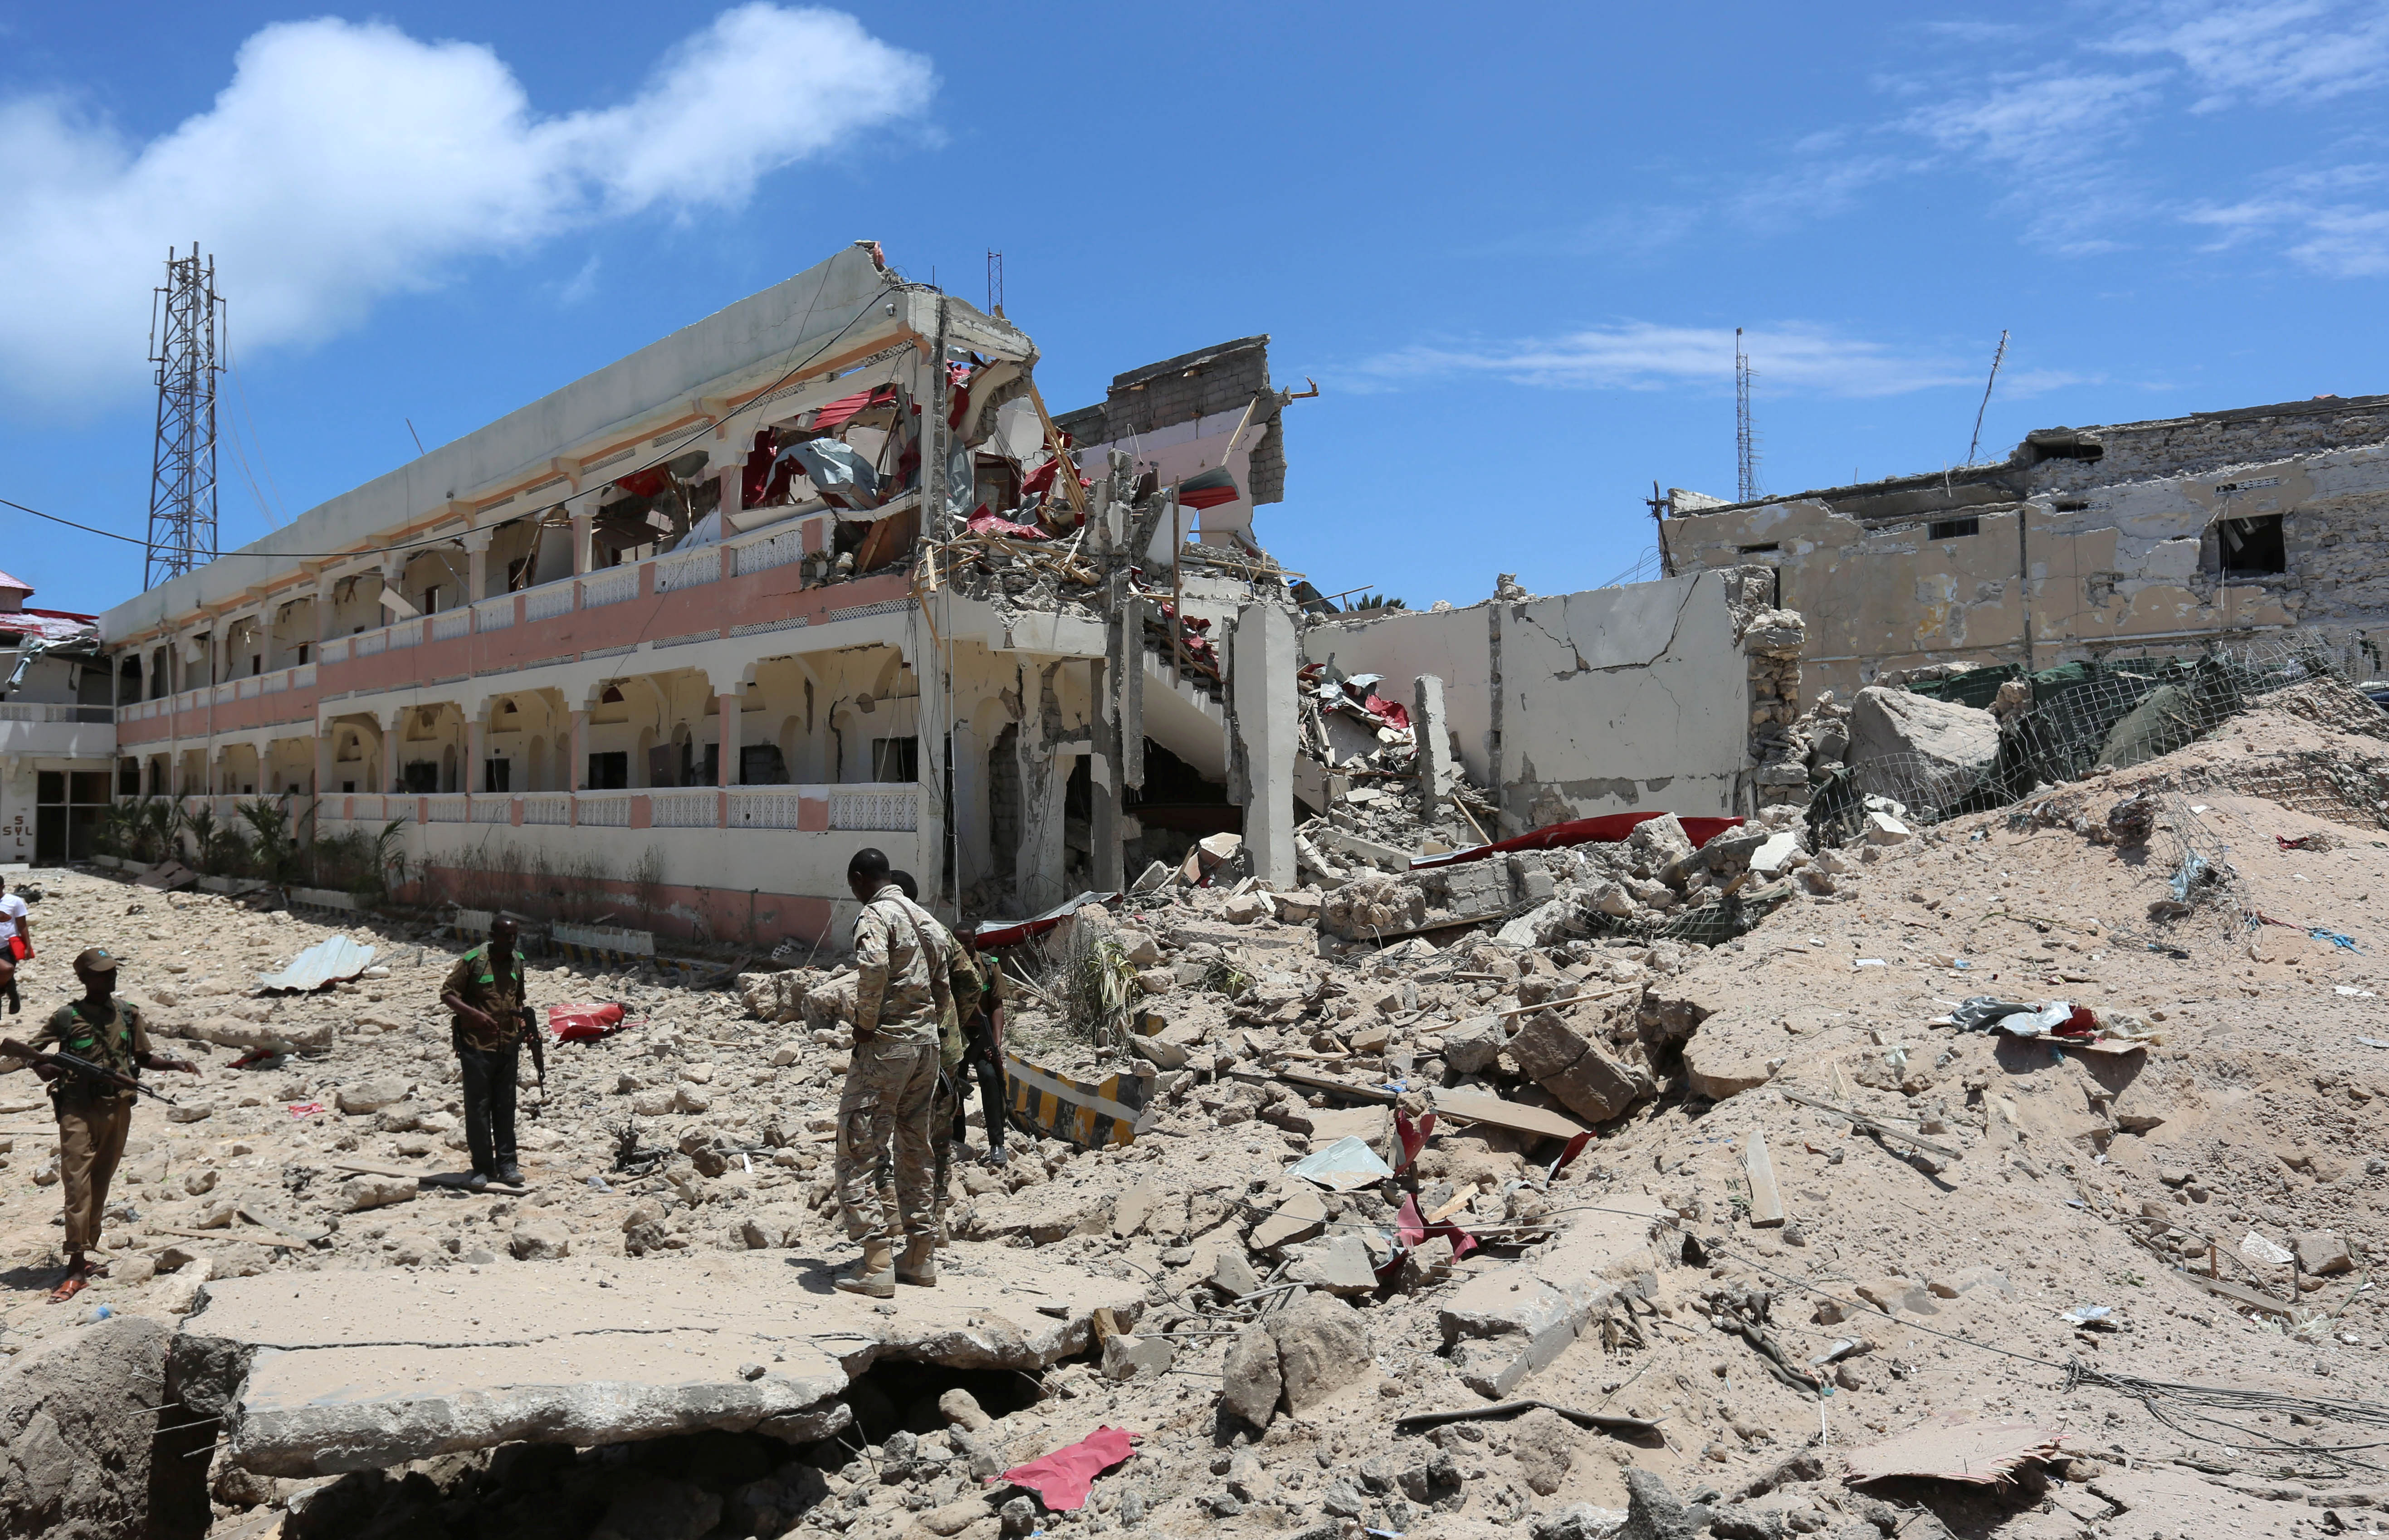 Security forces stand at the SYL hotel that was partly destroyed following a car bomb claimed by al Shabaab Islamist militants outside the president's palace in the Somali capital of Mogadishu, August 30, 2016.